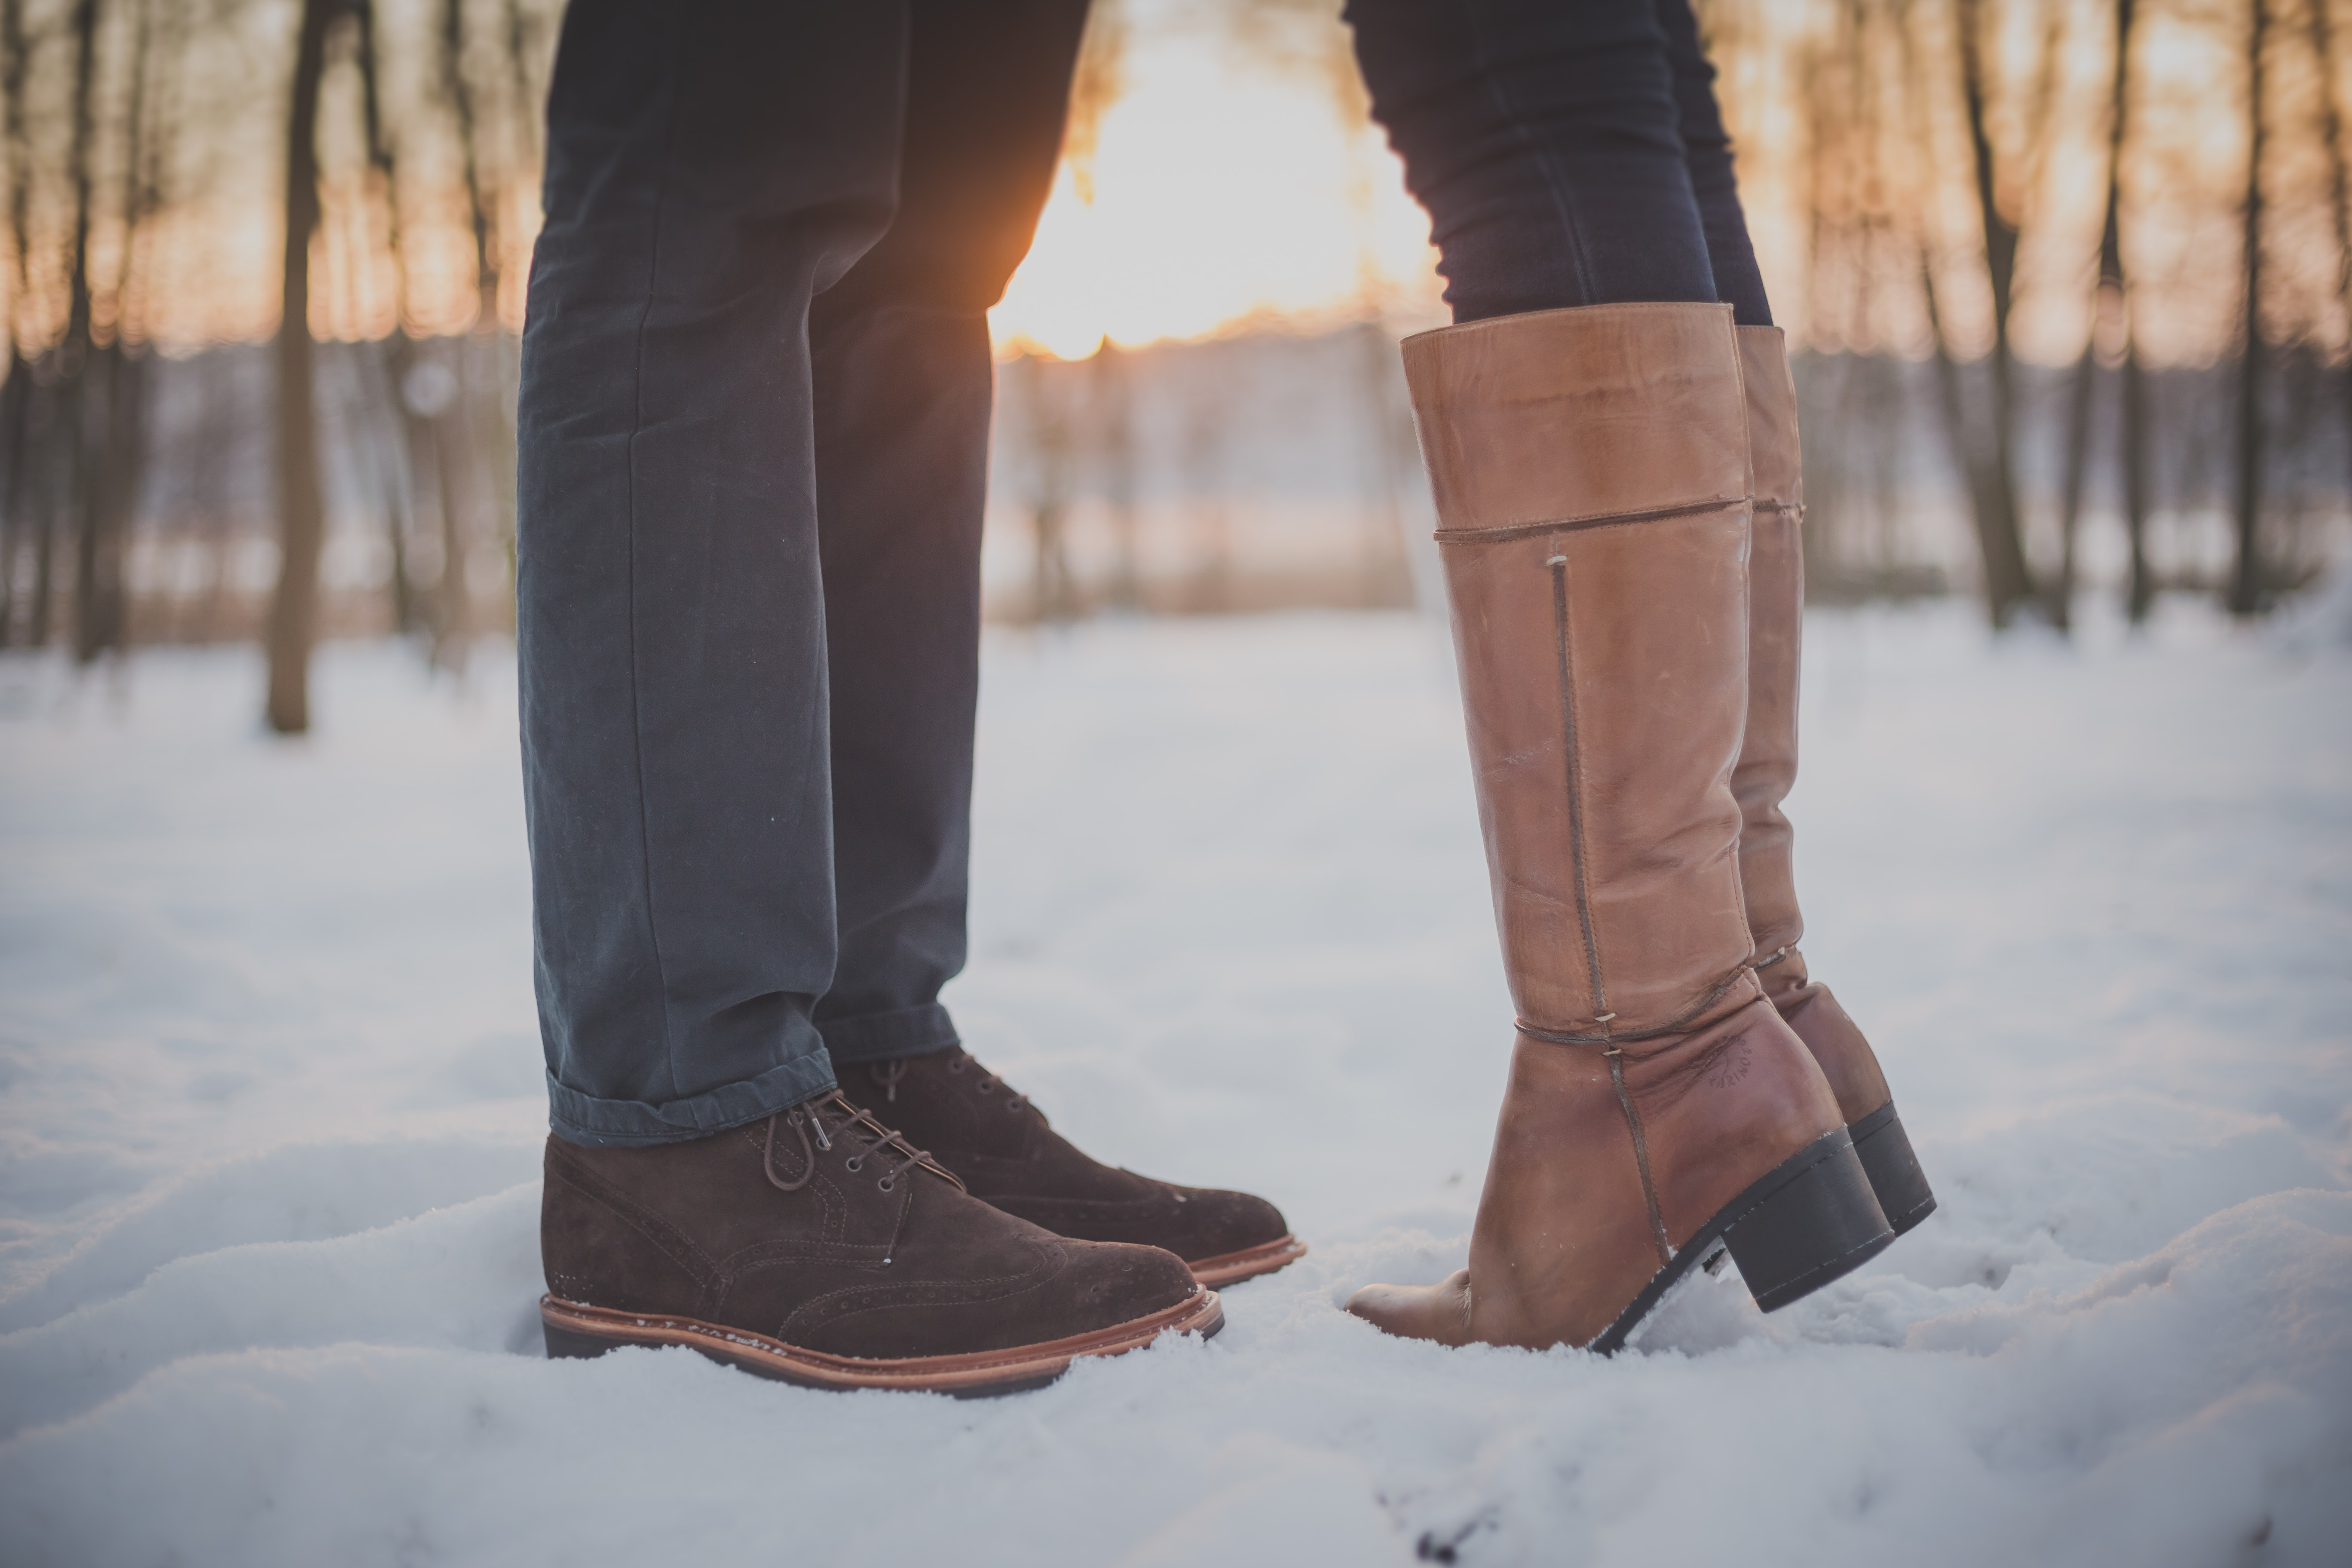 two person in brown boots and shoes on snowy forest